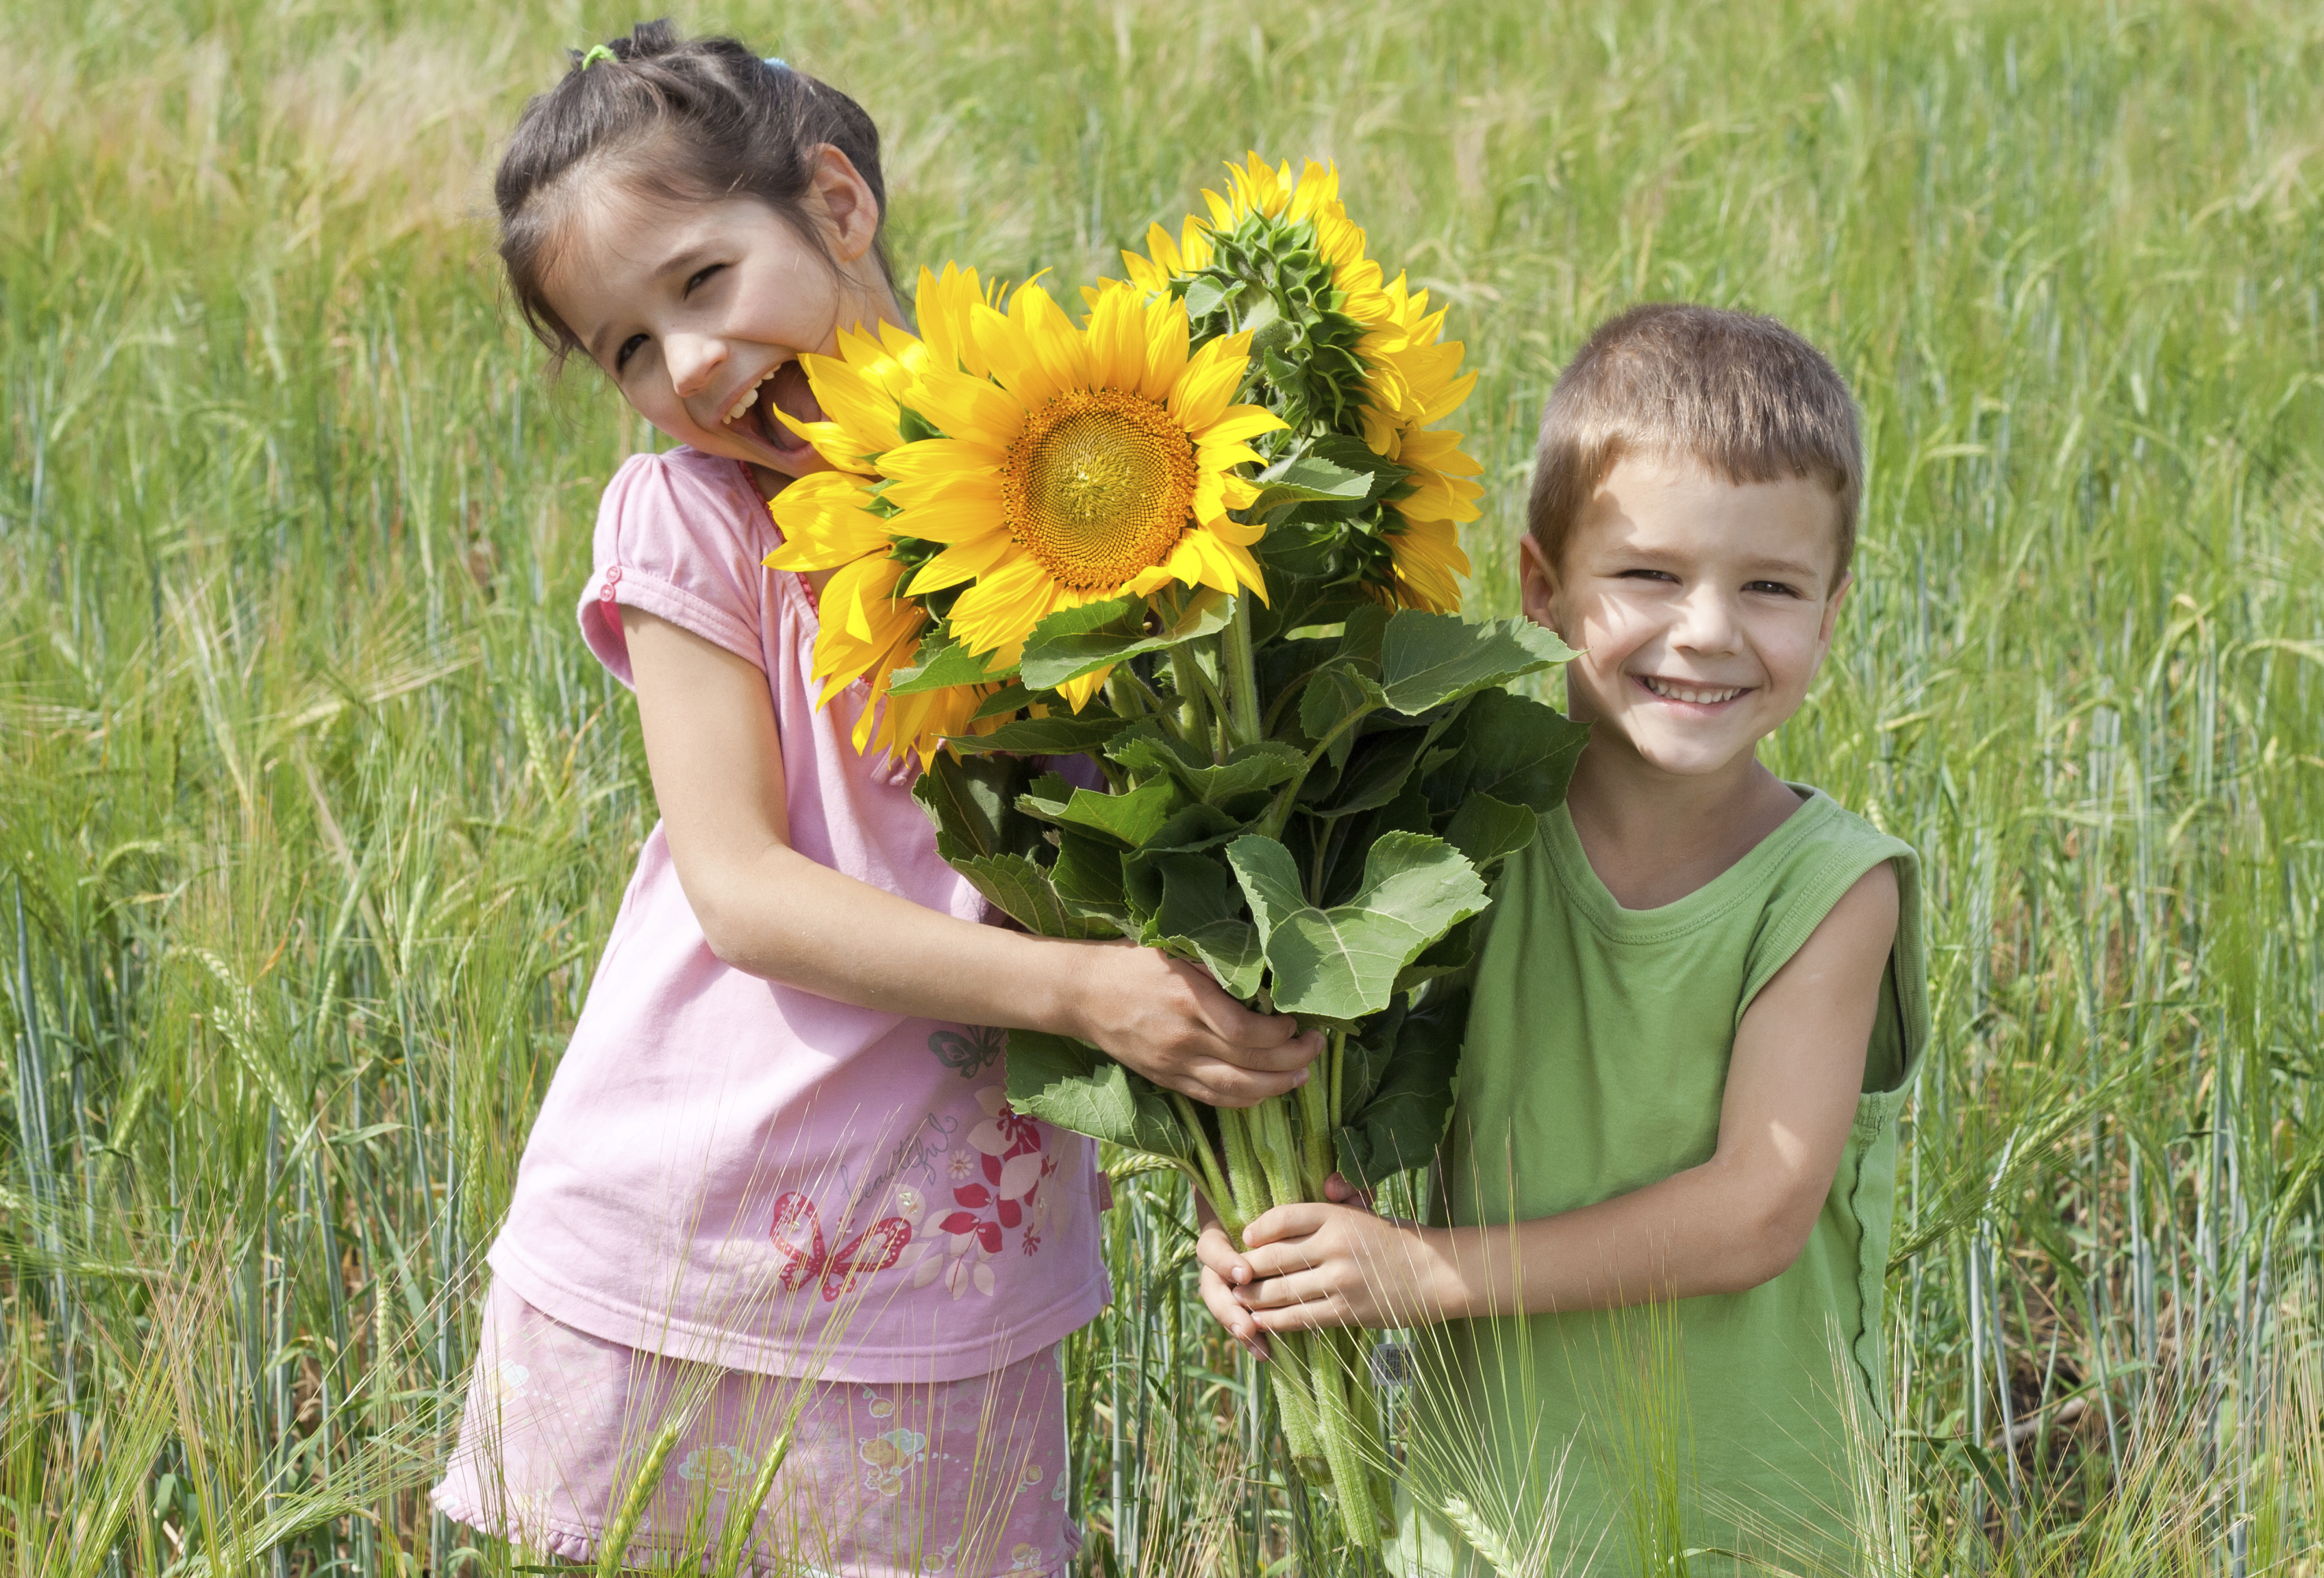 Two kids with sunflowers in a wheat field